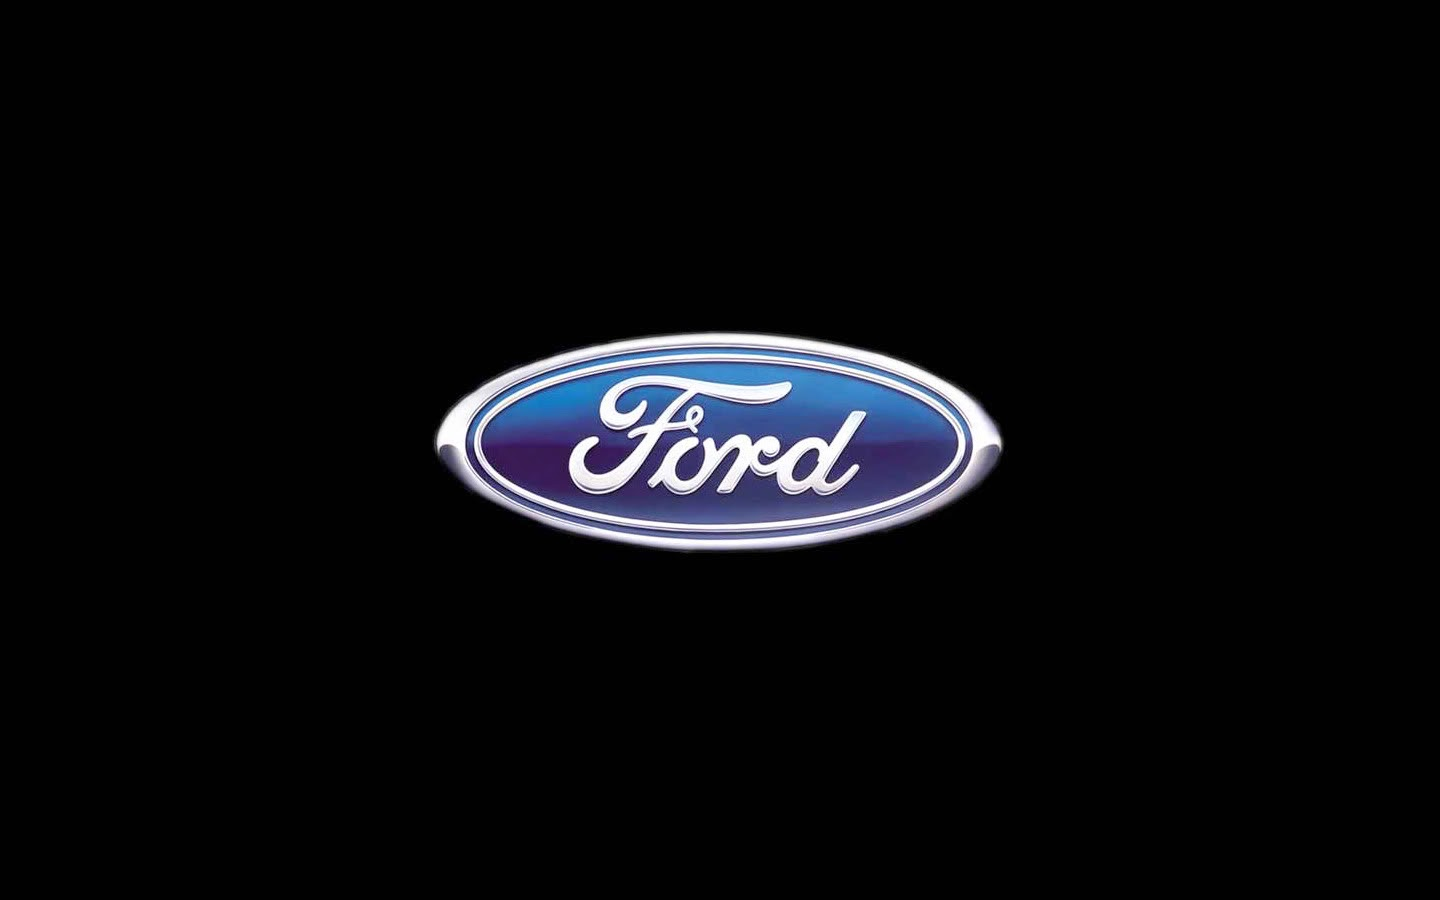 Ford Car Company Logo HD Wallpaper